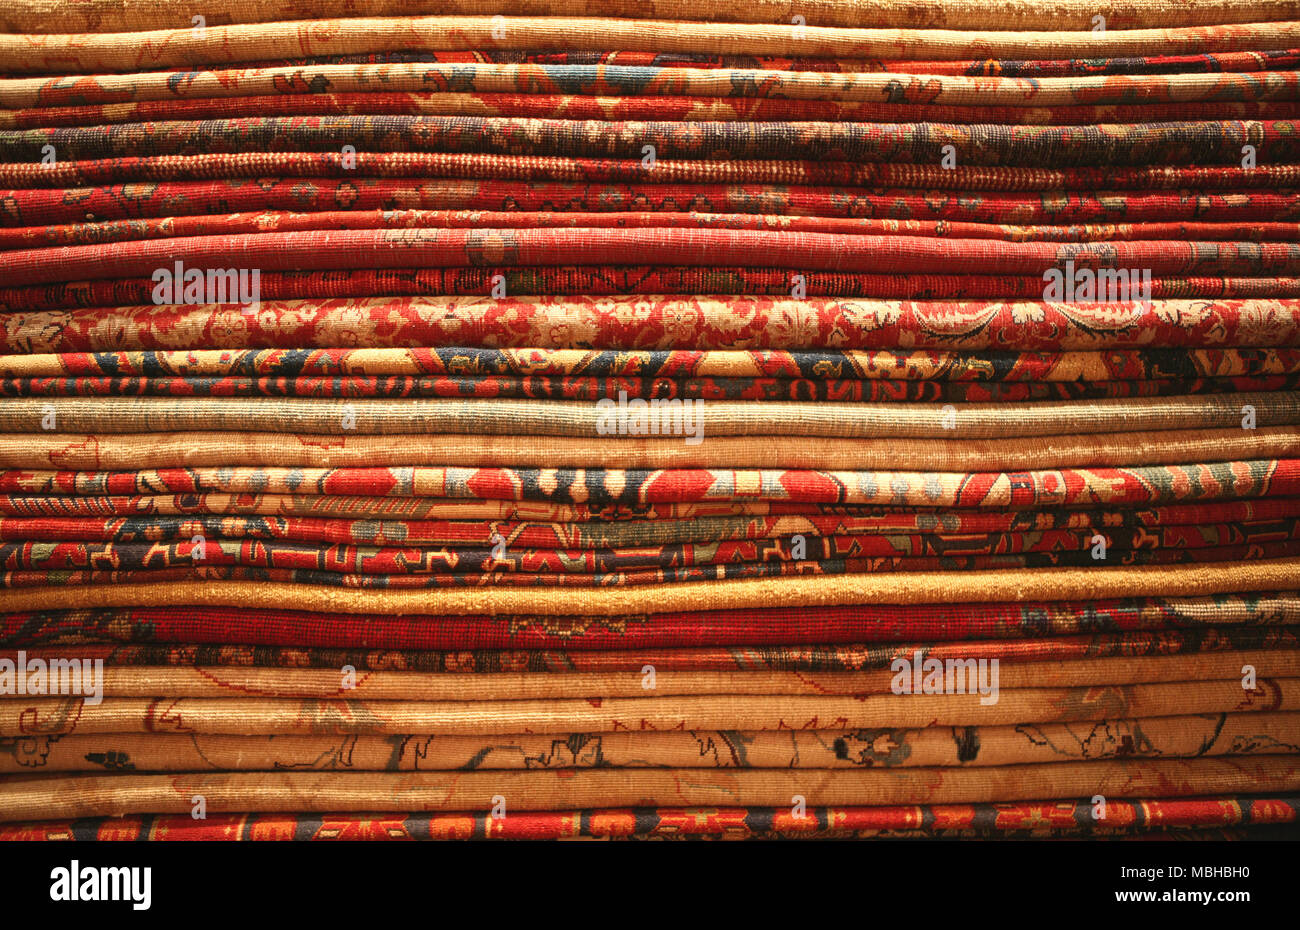 Pile of colorful oriental carpets - Stock Image